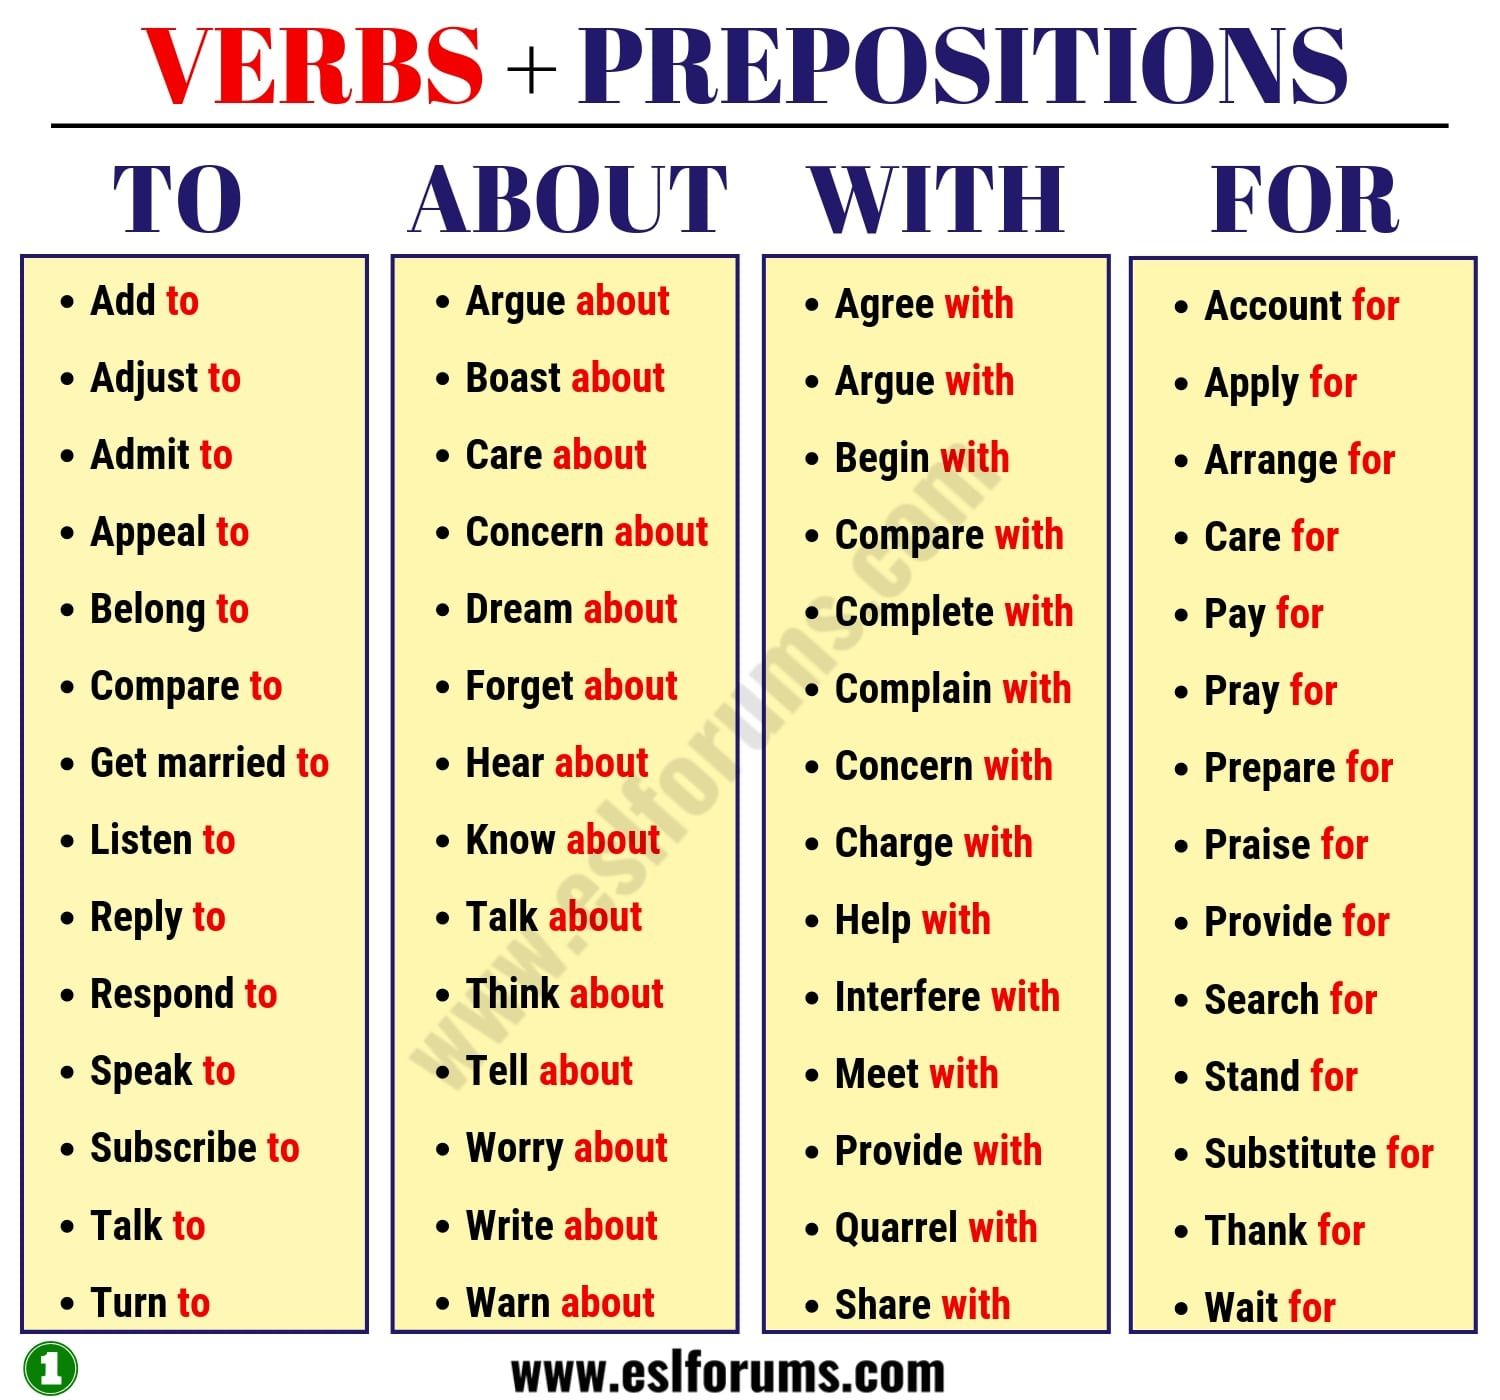 Learn 150 Important Verbs And Prepositions List In English